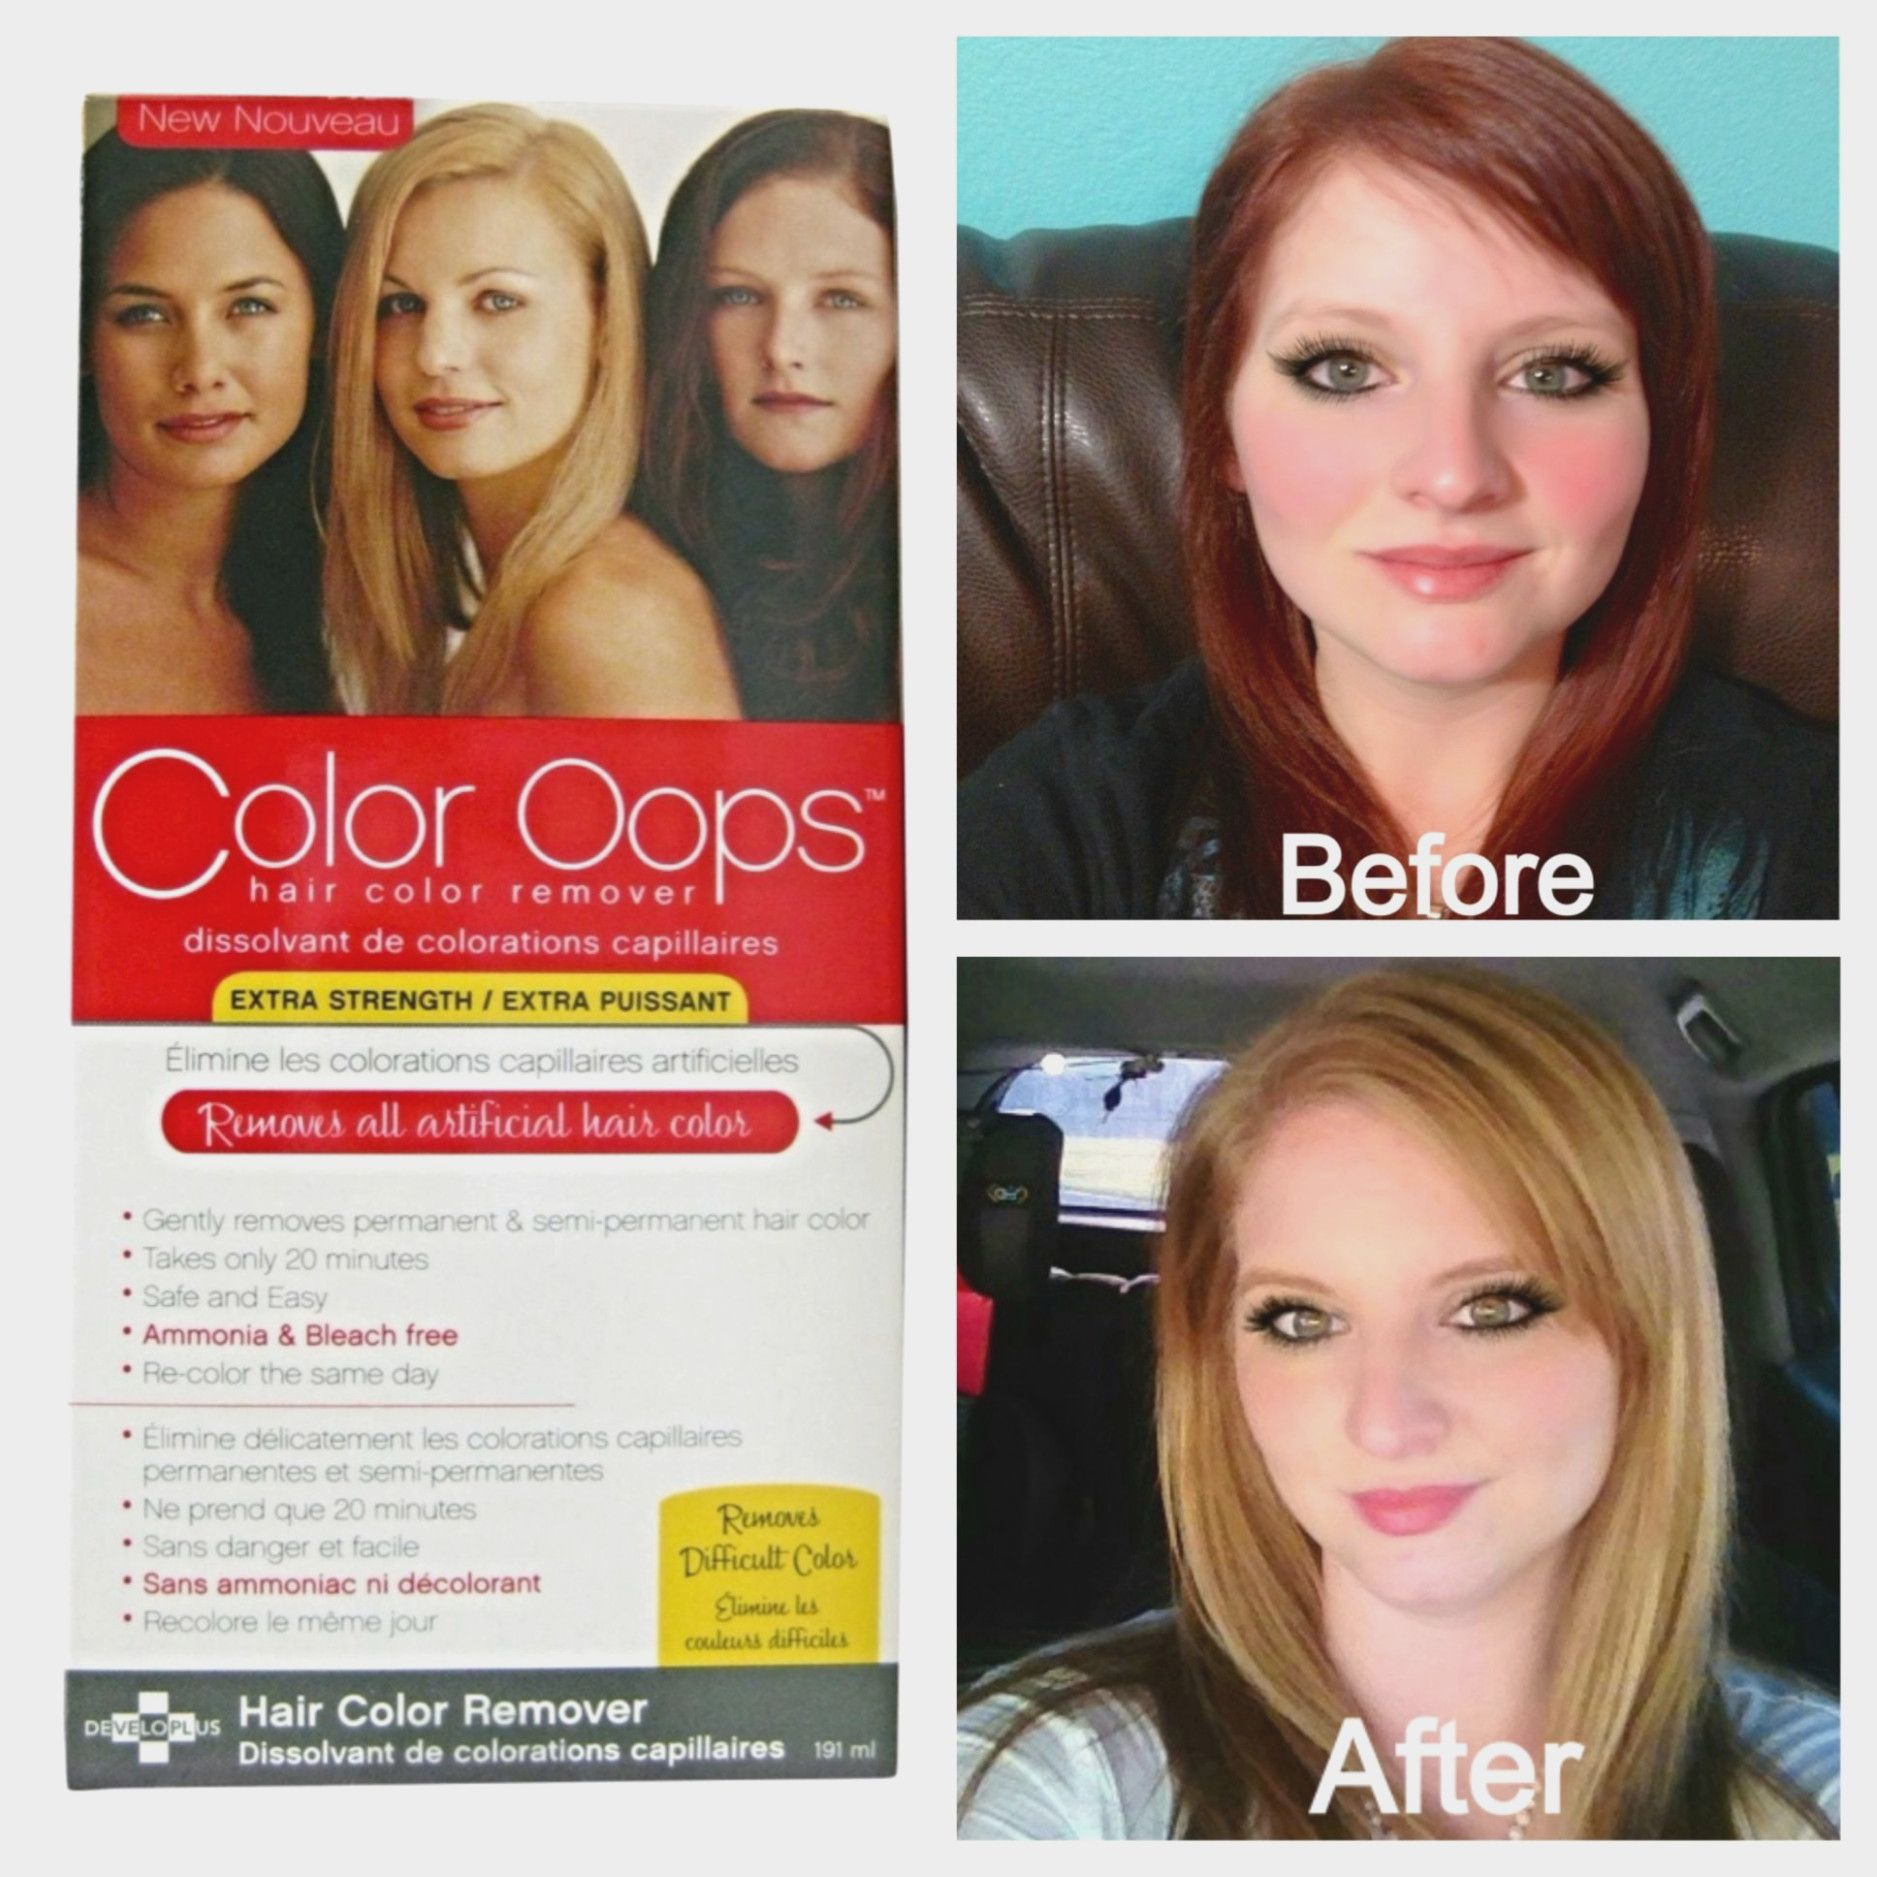 Does Oops Hair Color Remover Work Hair Body Pinterest Hair